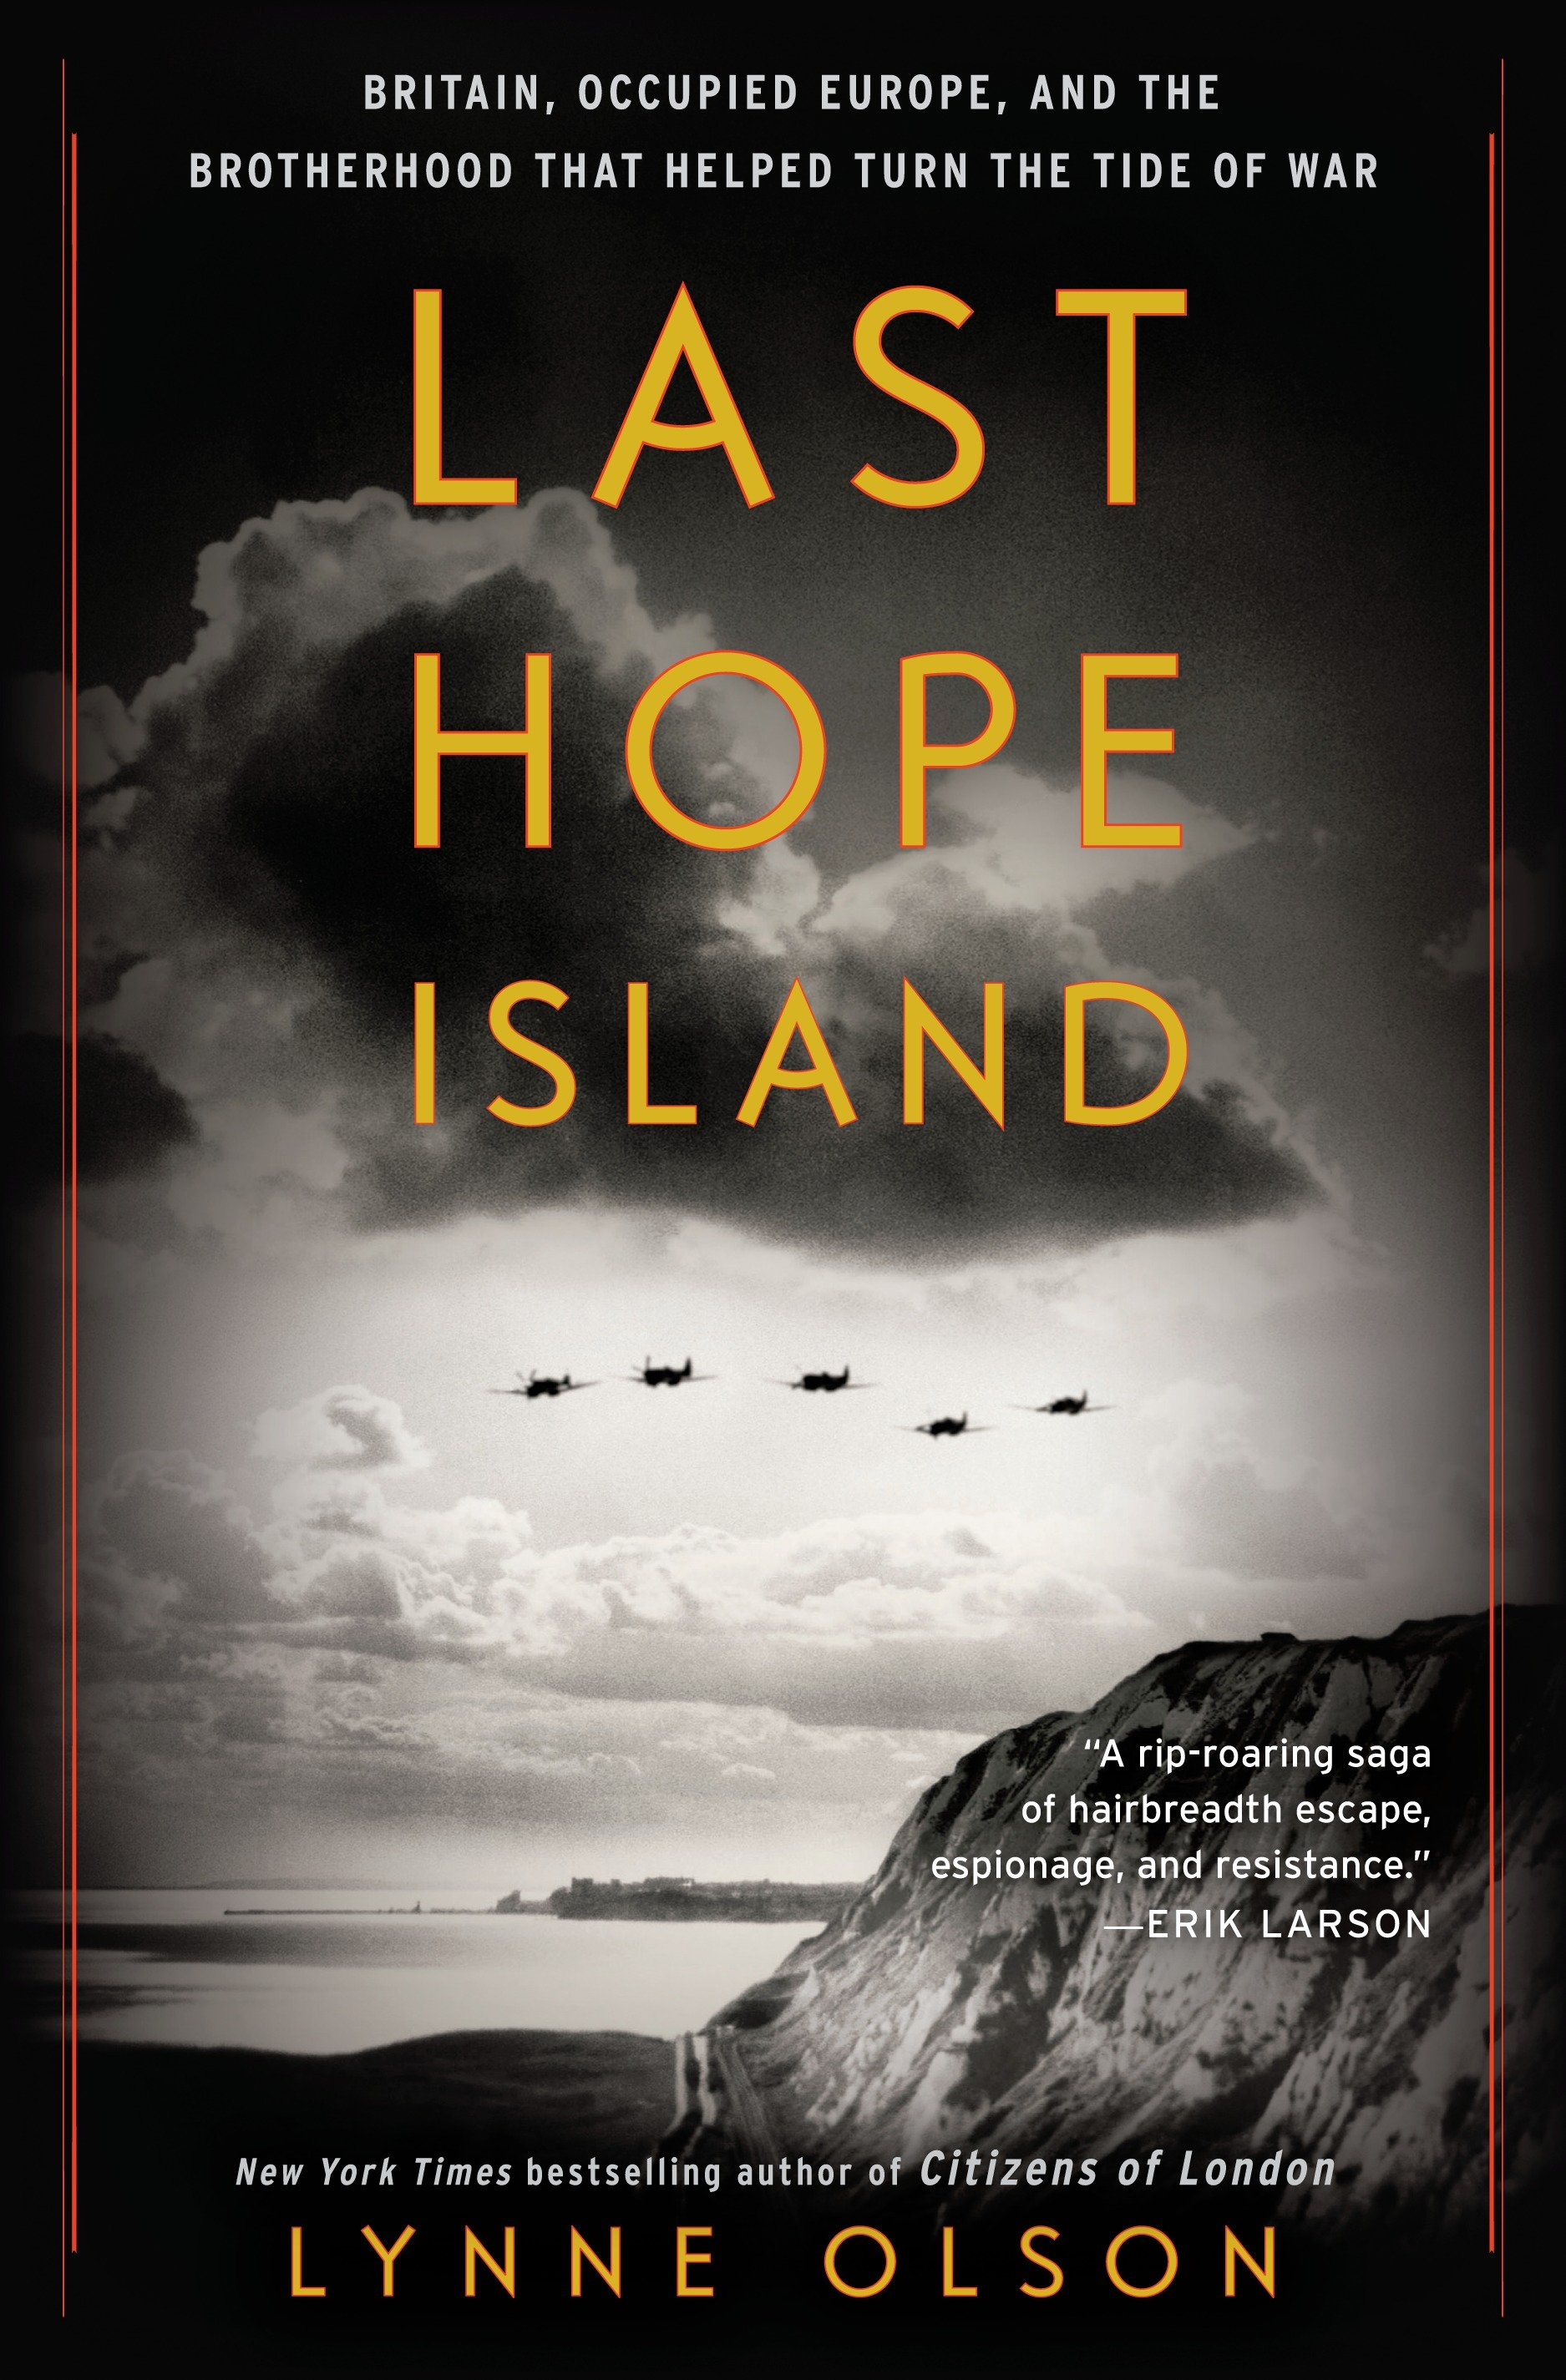 Last Hope Island Britain, occupied Europe, and the brotherhood that helped turn the tide of war cover image